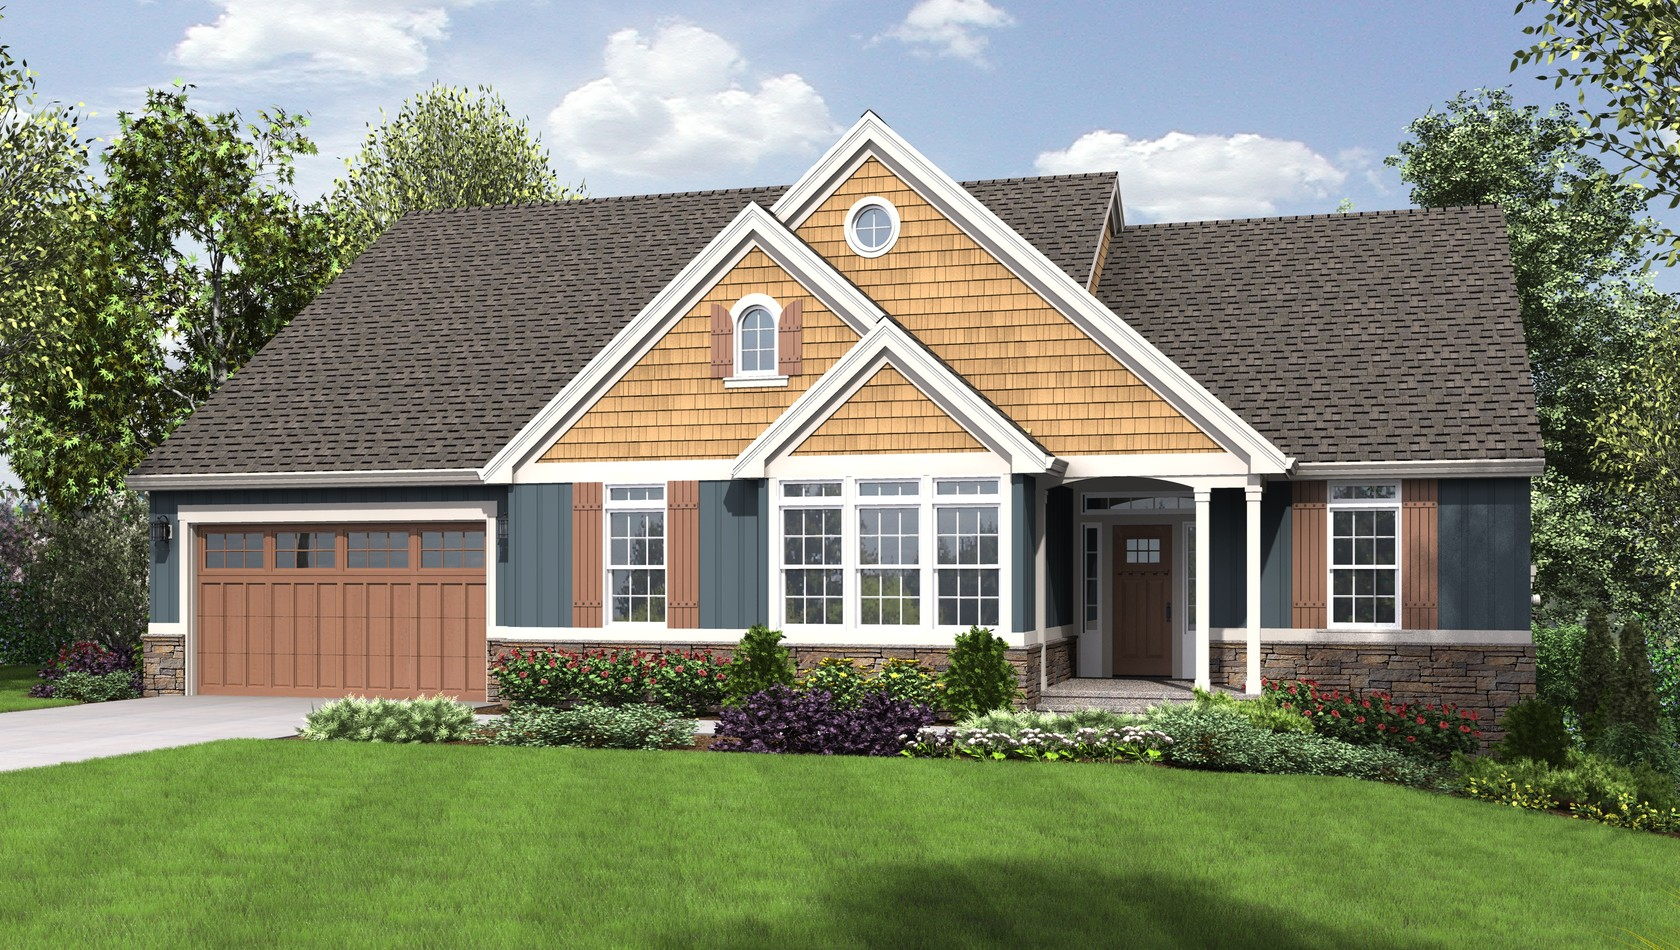 Main image for house plan 1231B: The Munich